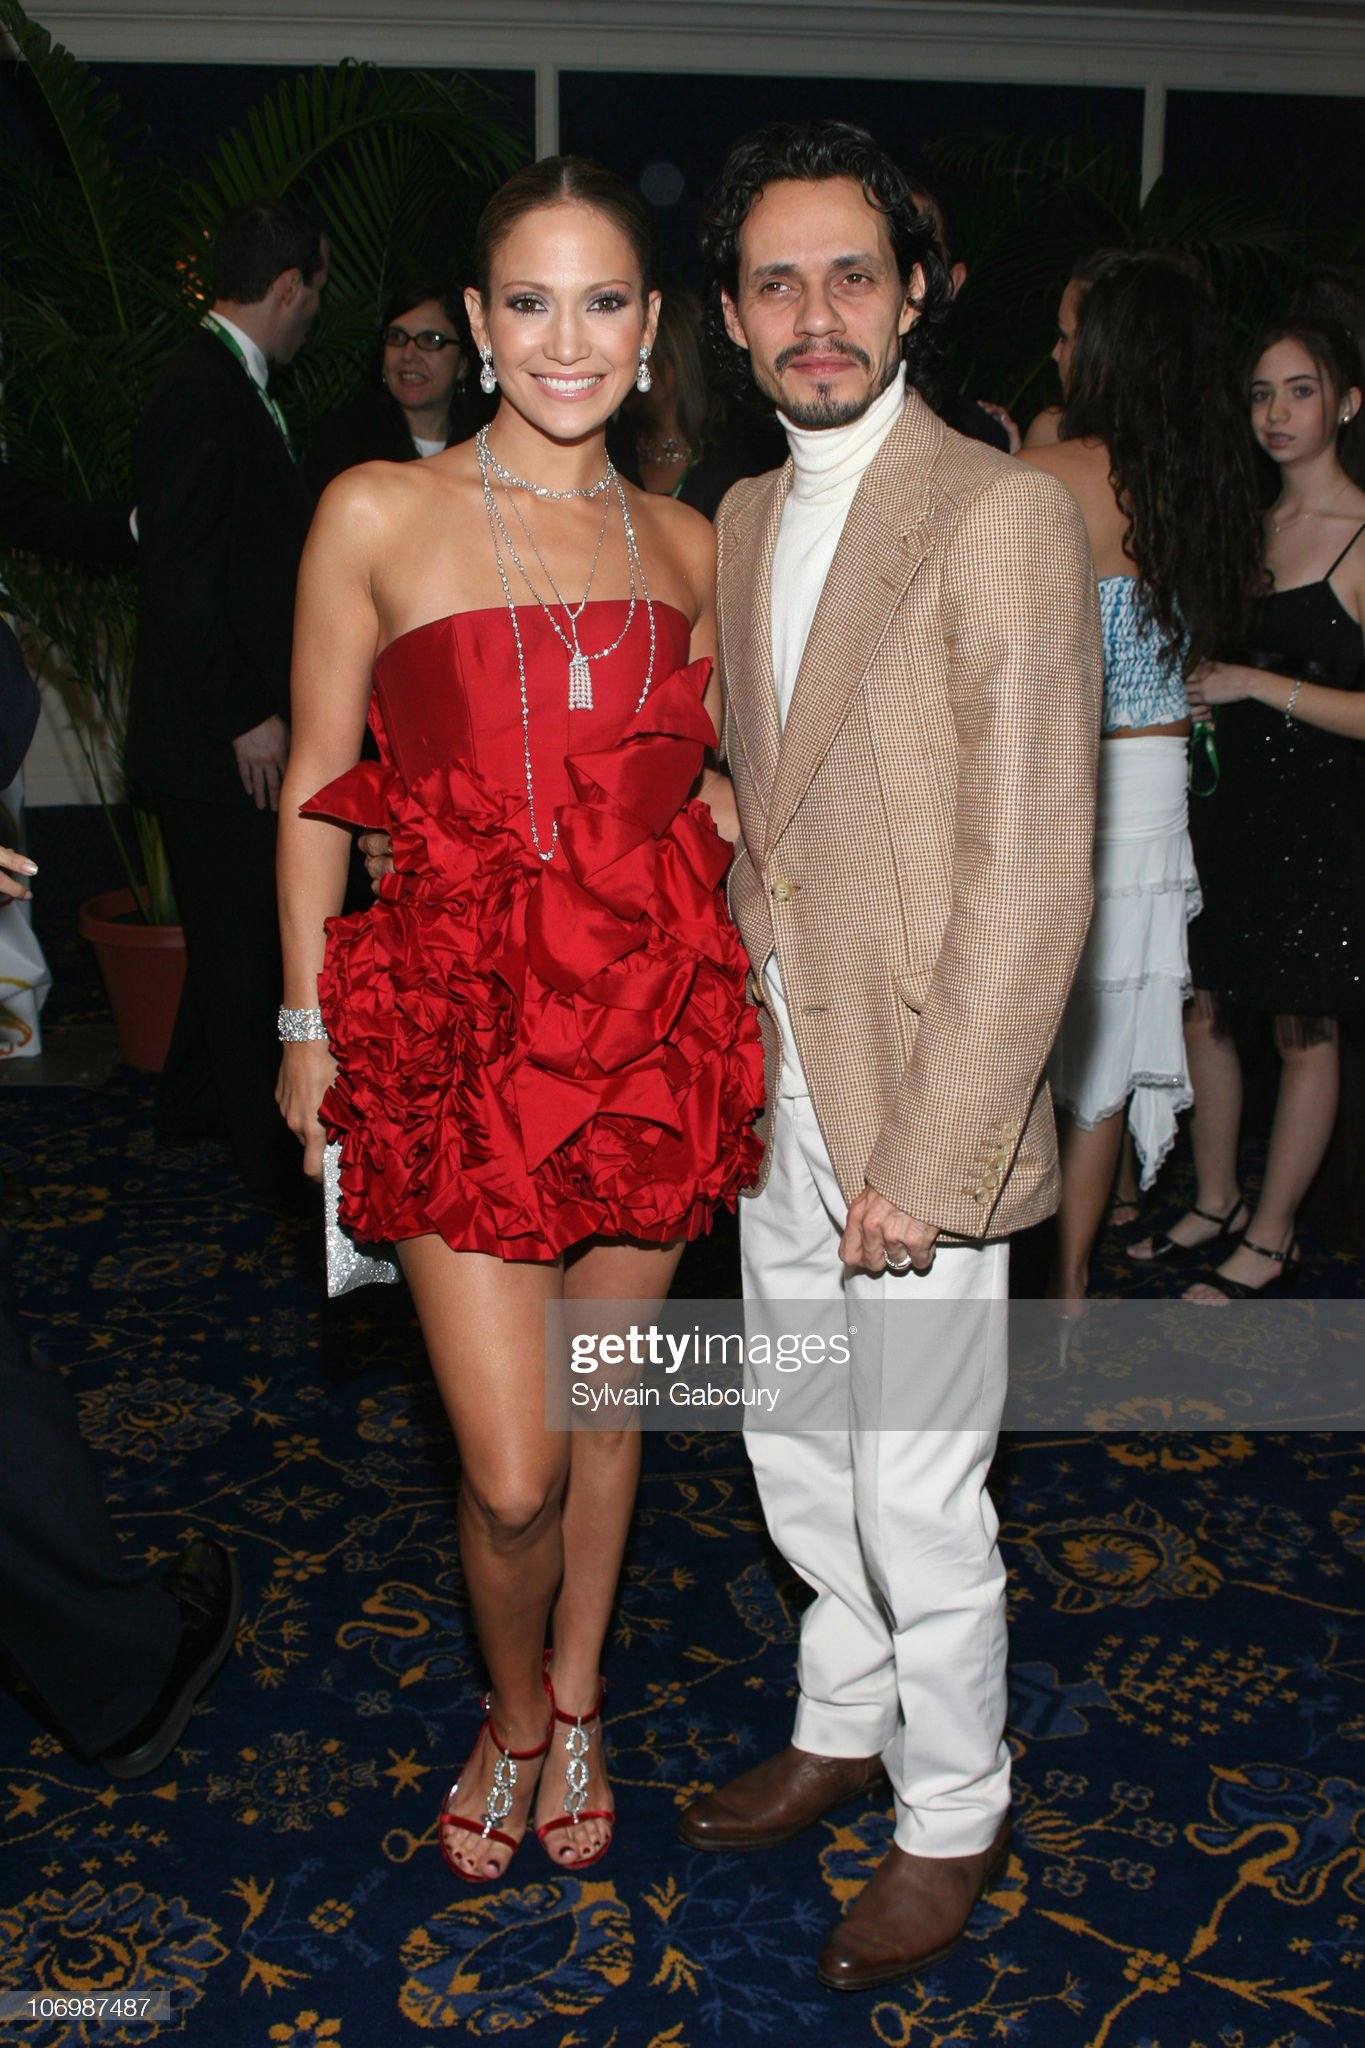 ¿Cuánto mide Marc Anthony? - Altura - Real height Jennifer-lopez-and-marc-anthony-during-2006-latin-recording-academy-picture-id106987487?s=2048x2048